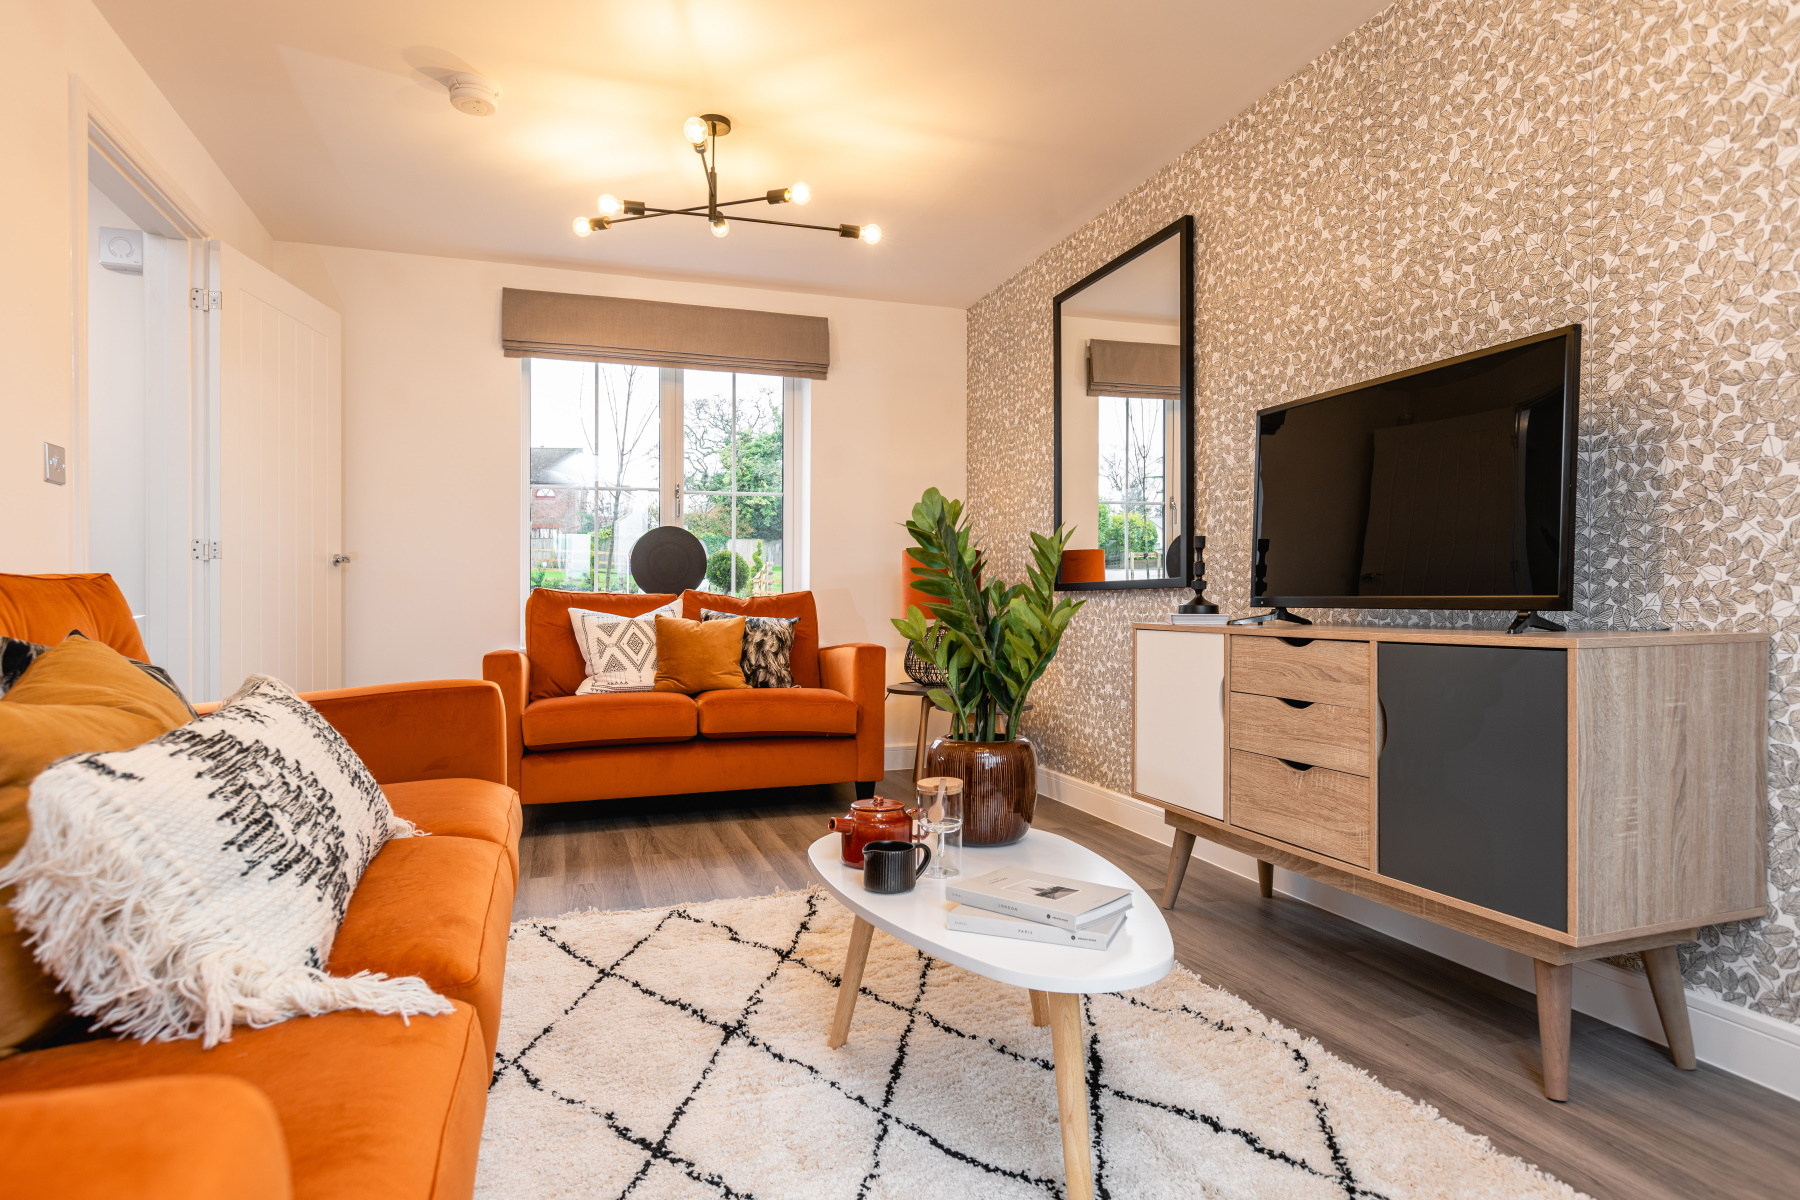 Taylor Wimpey Exeter - Cranbrook - Yewdale example living room 2